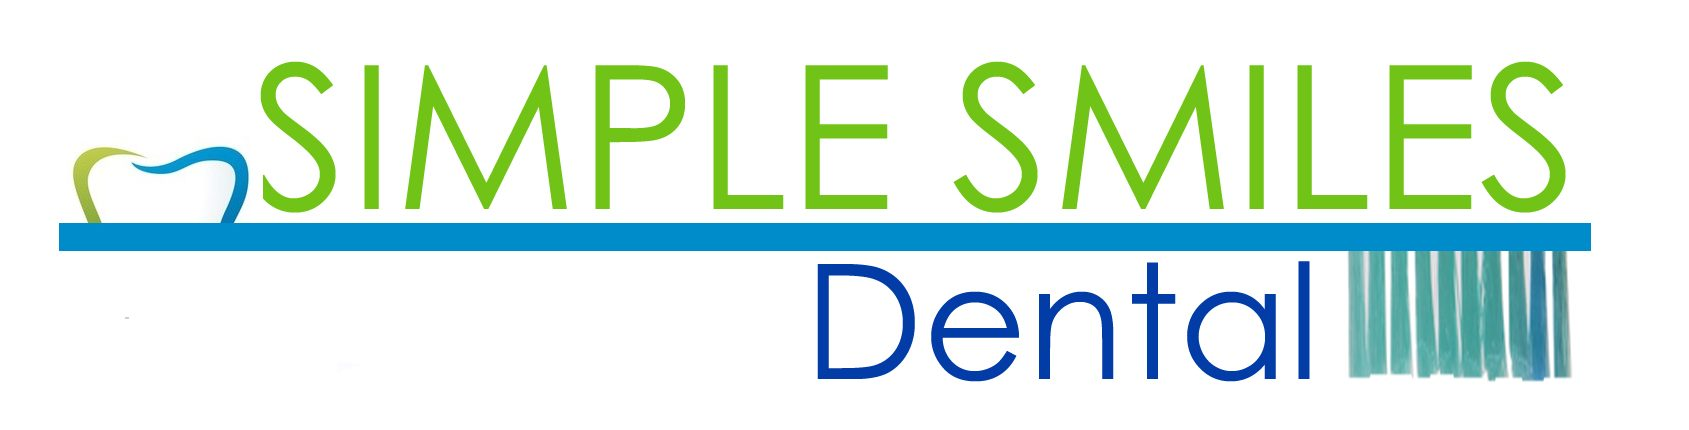 Simple Smiles Dental